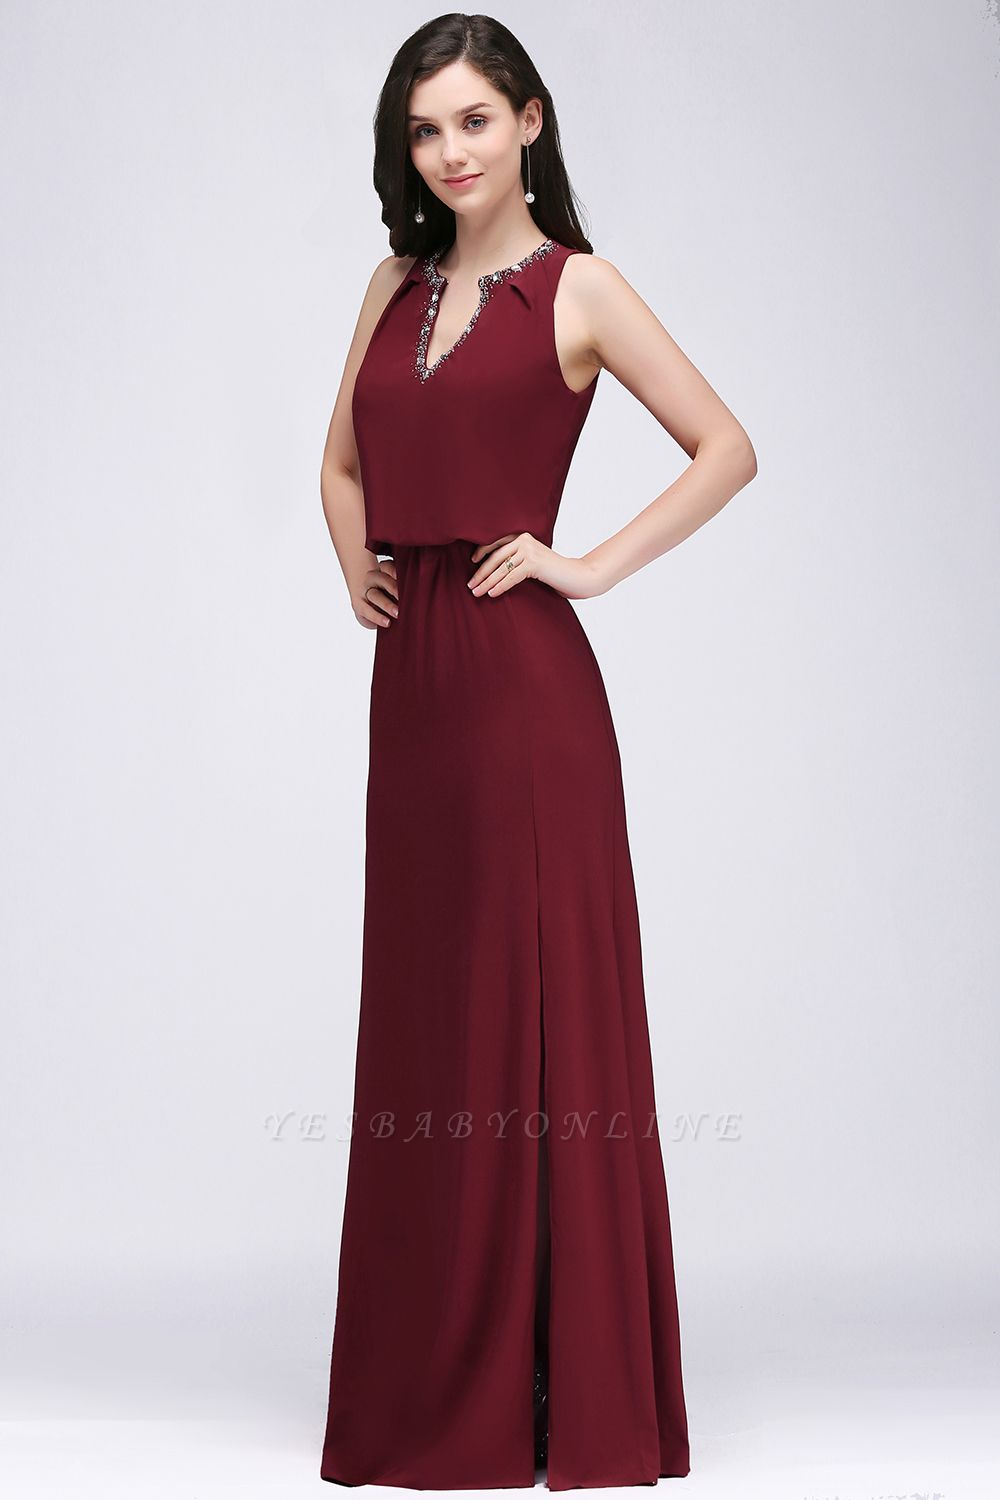 Cheap Front-split Crystal Floor-length V-neck Sleeveless Burgundy A-line Evening Dress in Stock